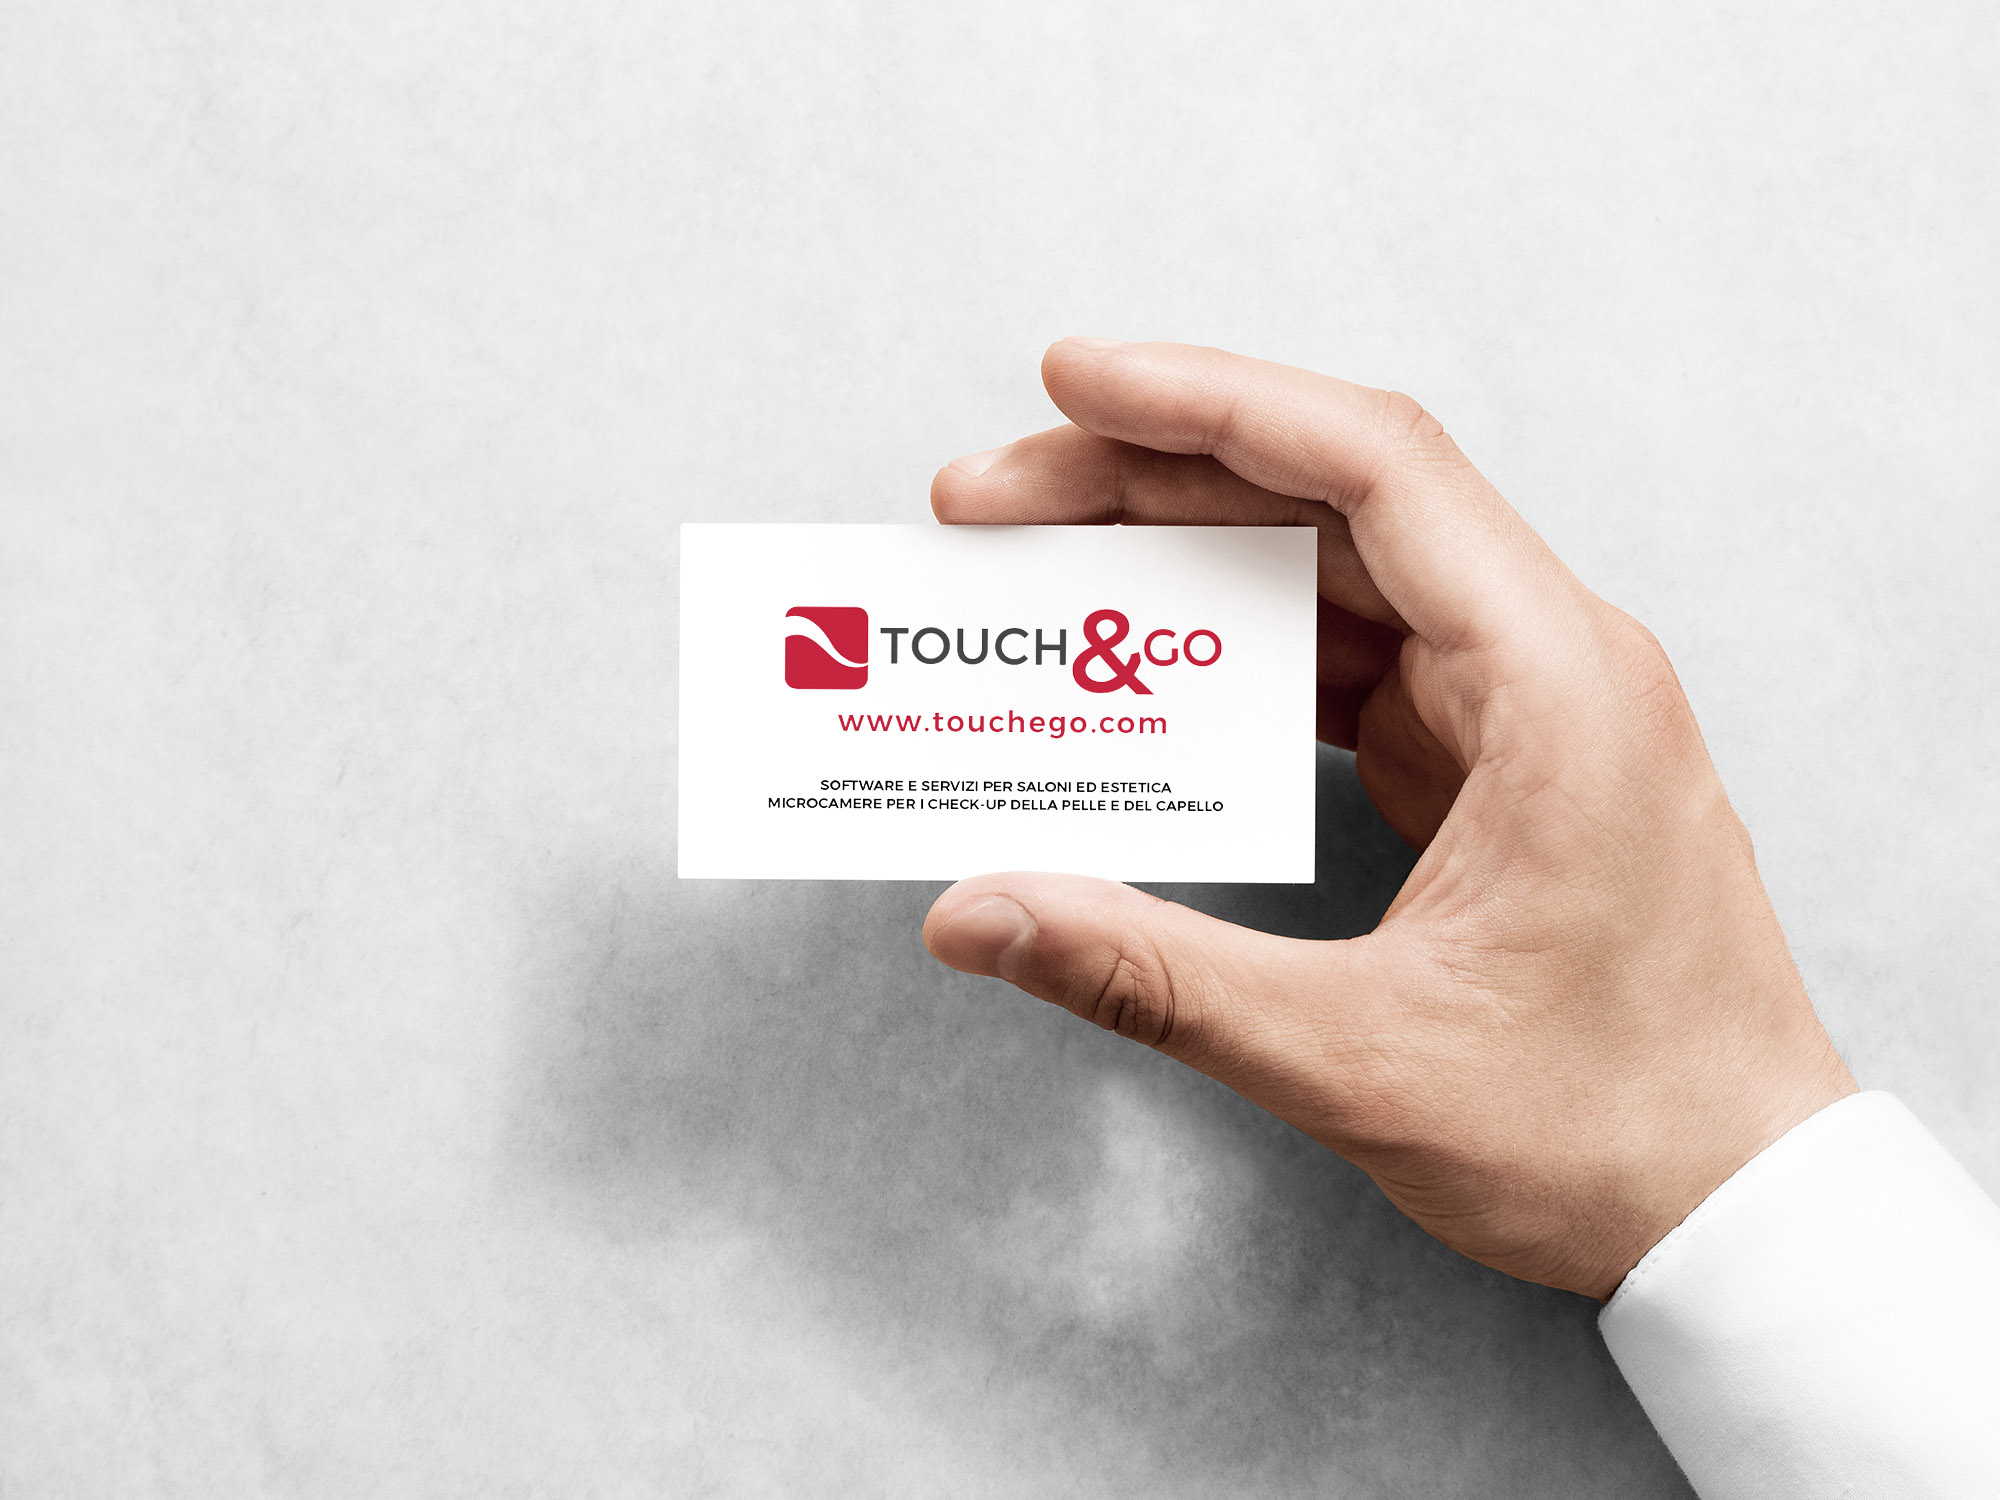 business card touch & go